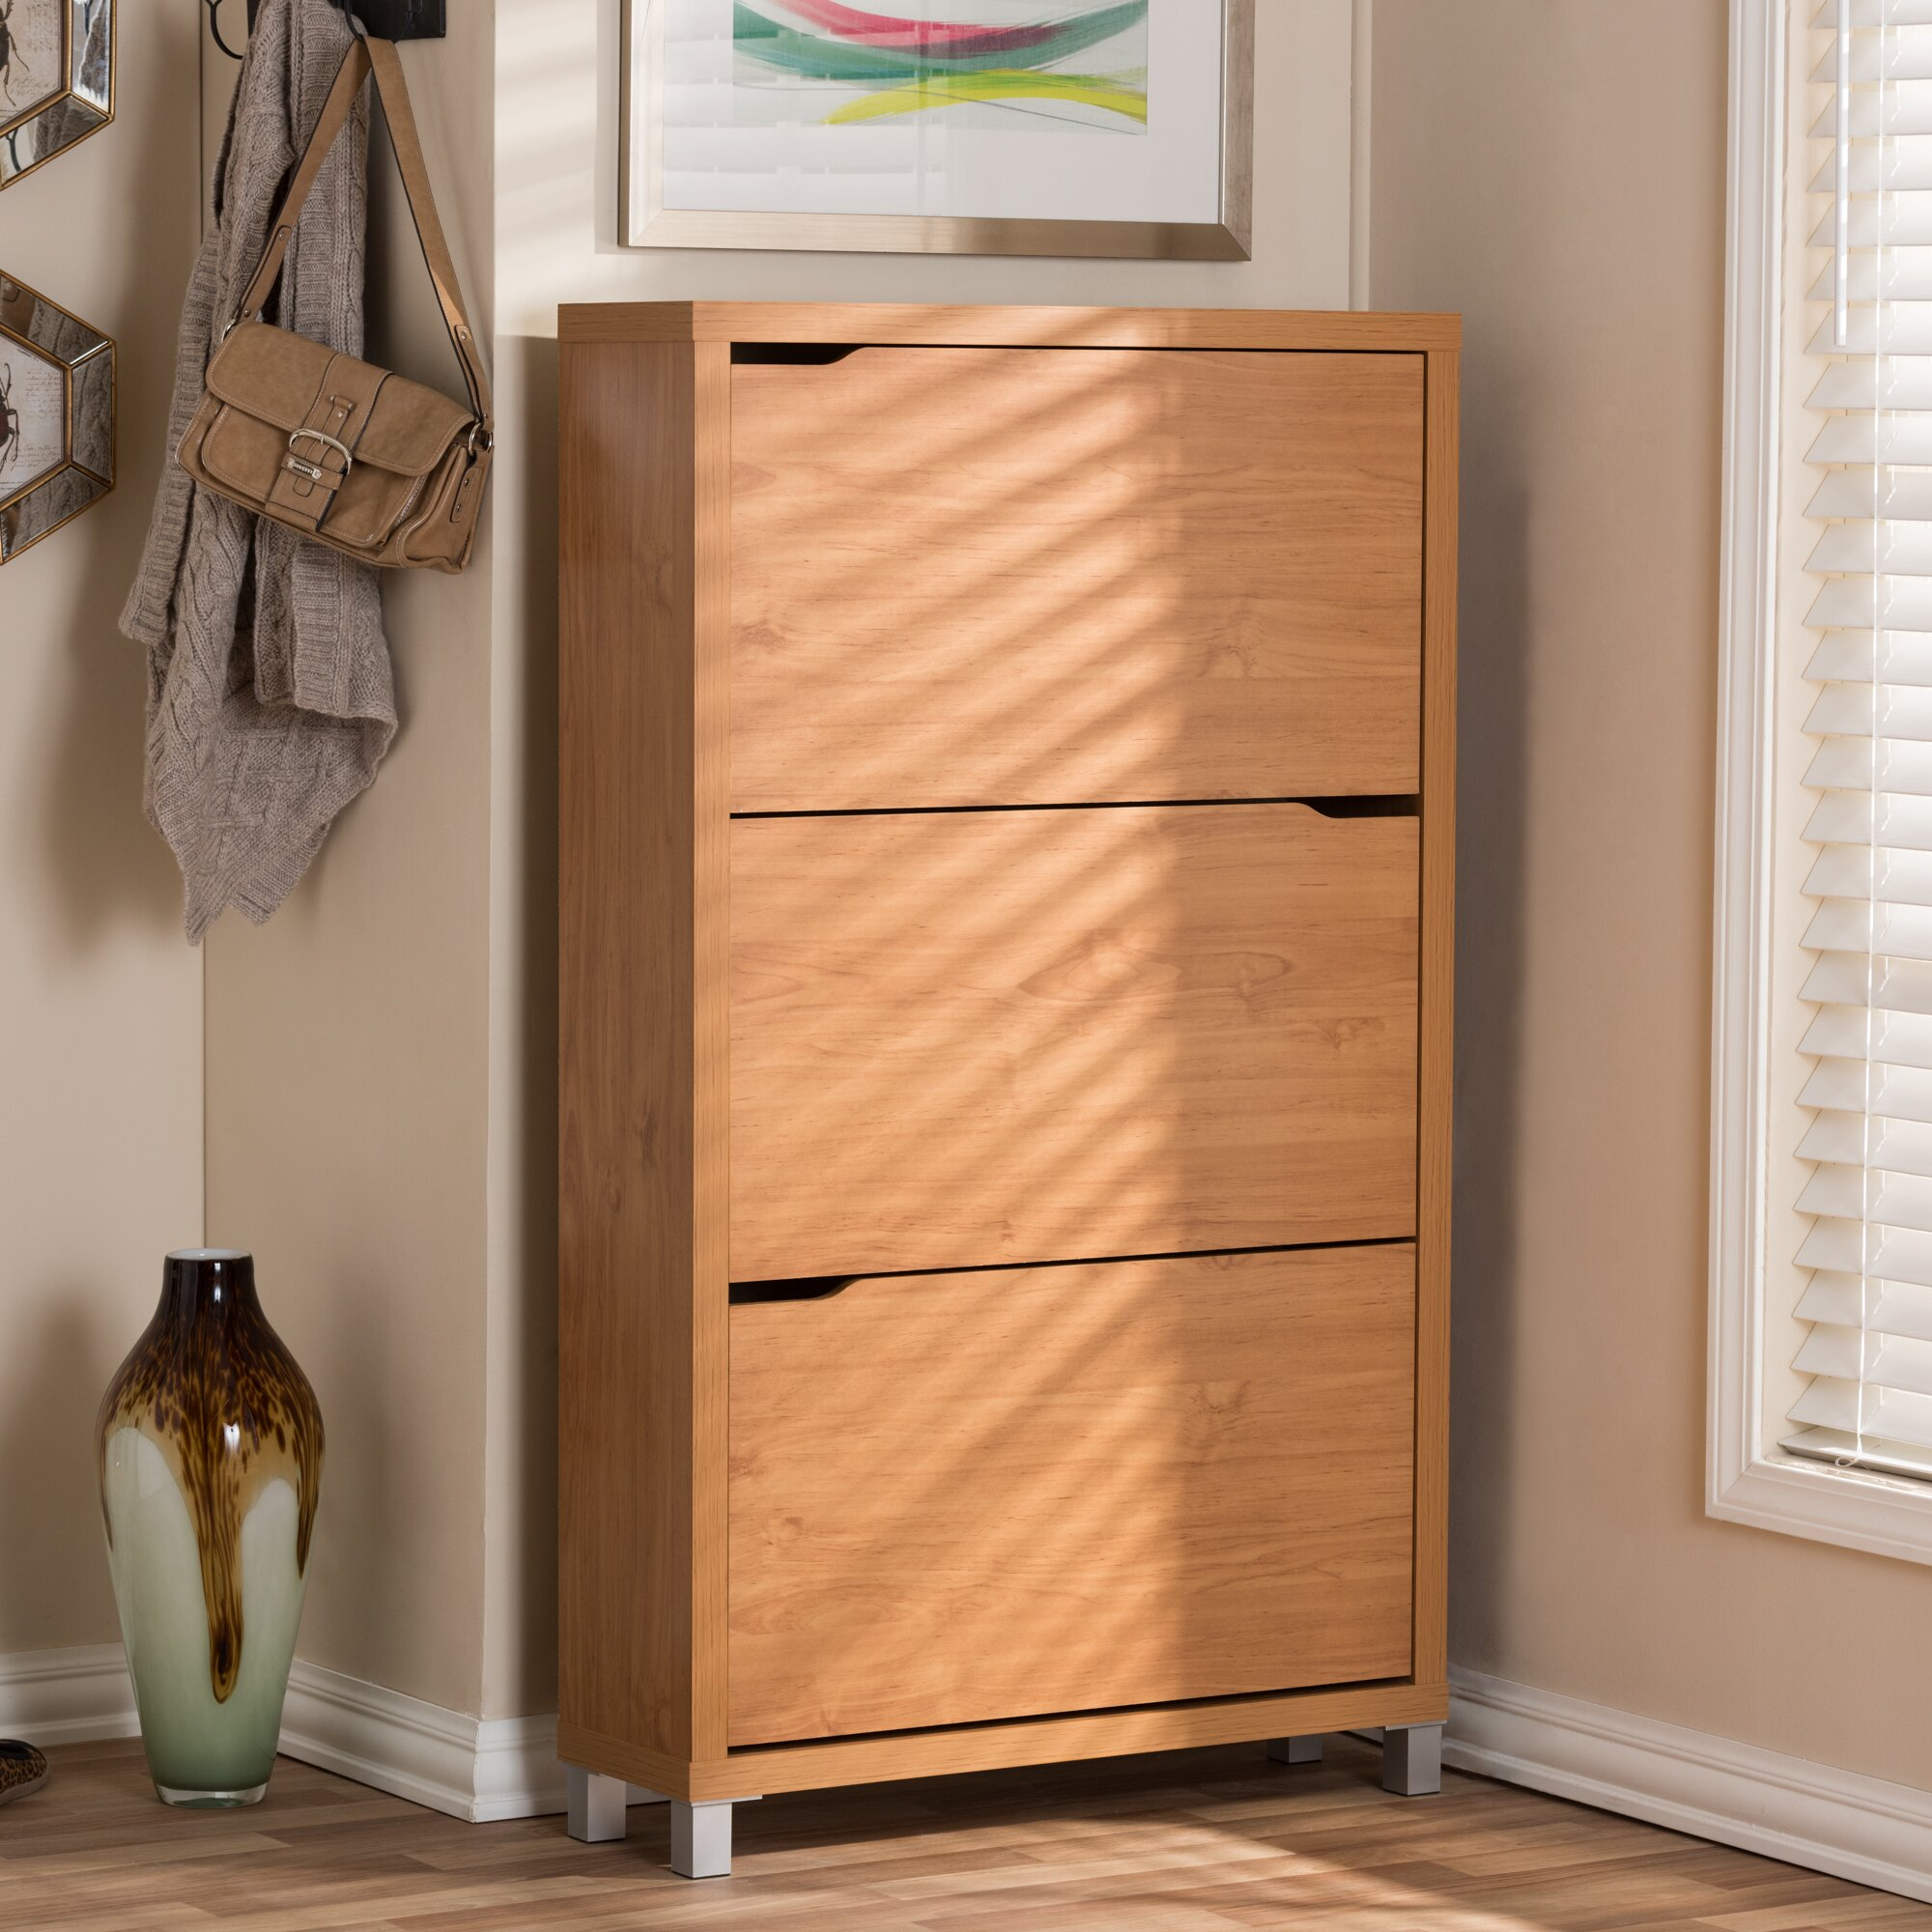 18 Storage Cabinet Brayden Studio Cade Modern 18 Pair Shoe Storage Cabinet Reviews